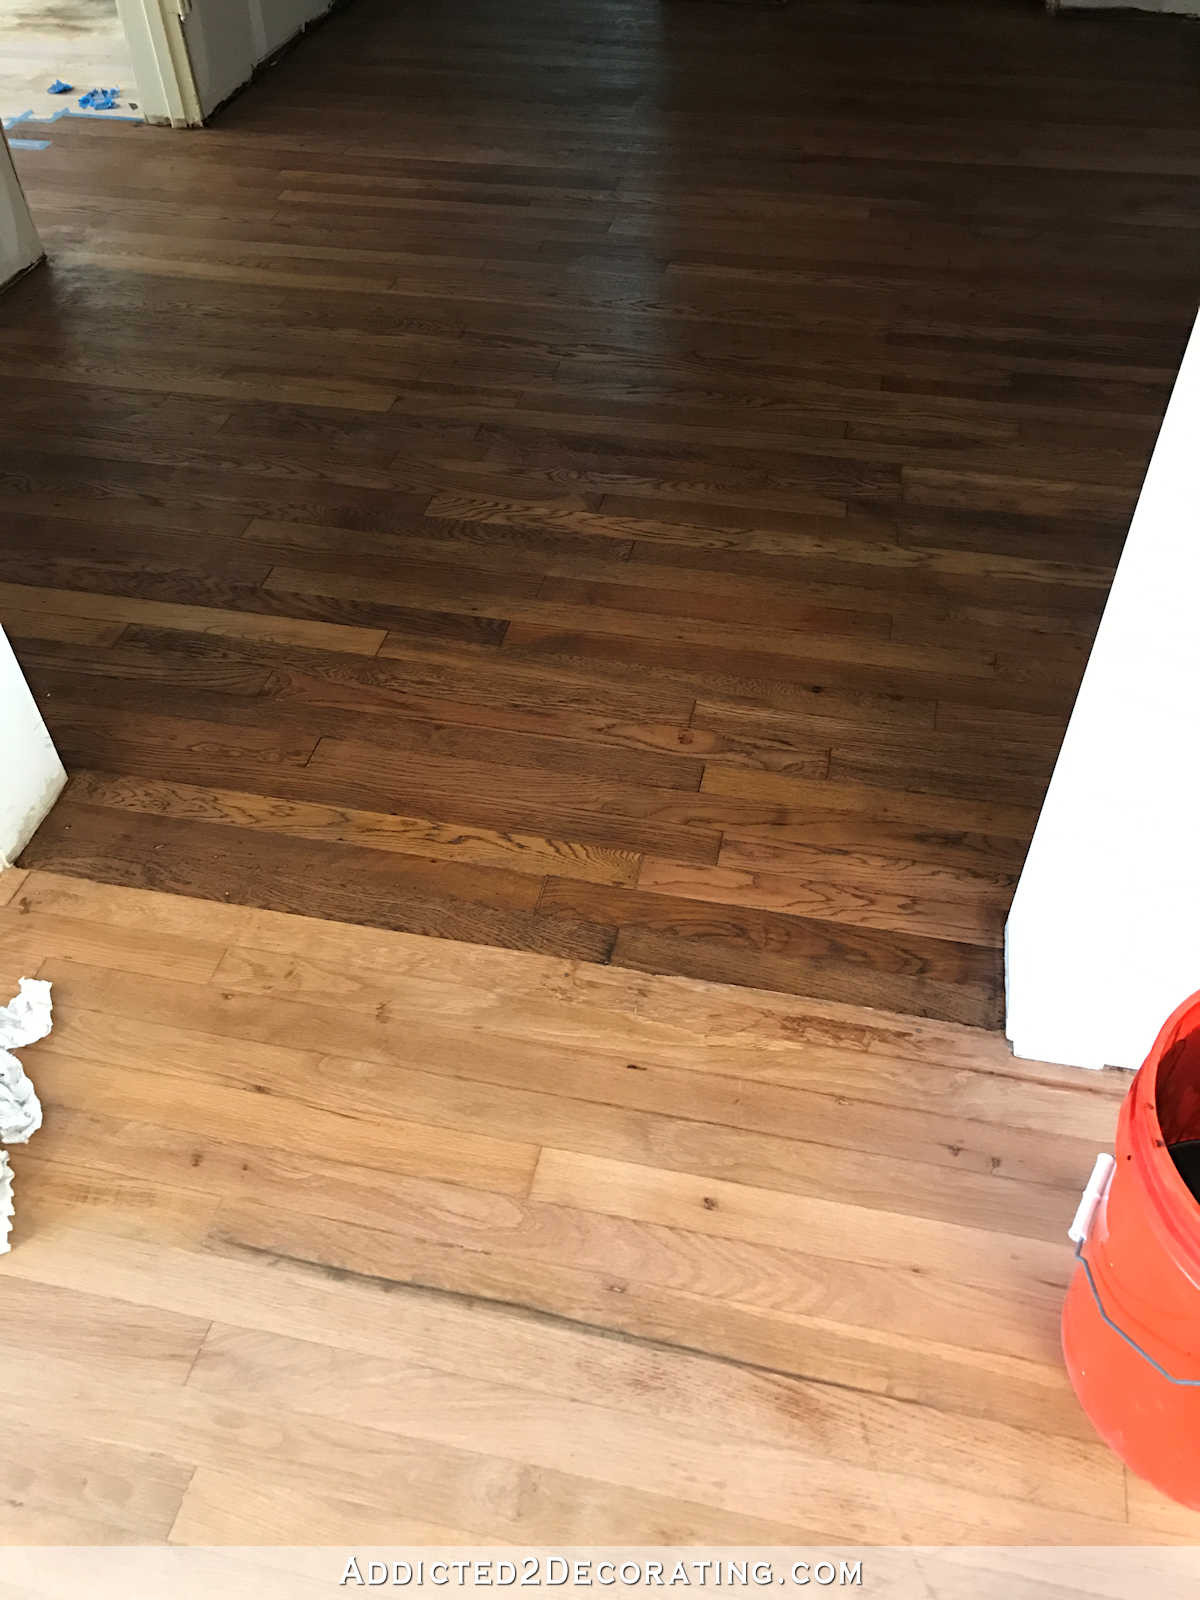 popular hardwood floor colors 2016 of adventures in staining my red oak hardwood floors products process inside staining red oak hardwood floors 2 tape off one section at a time for